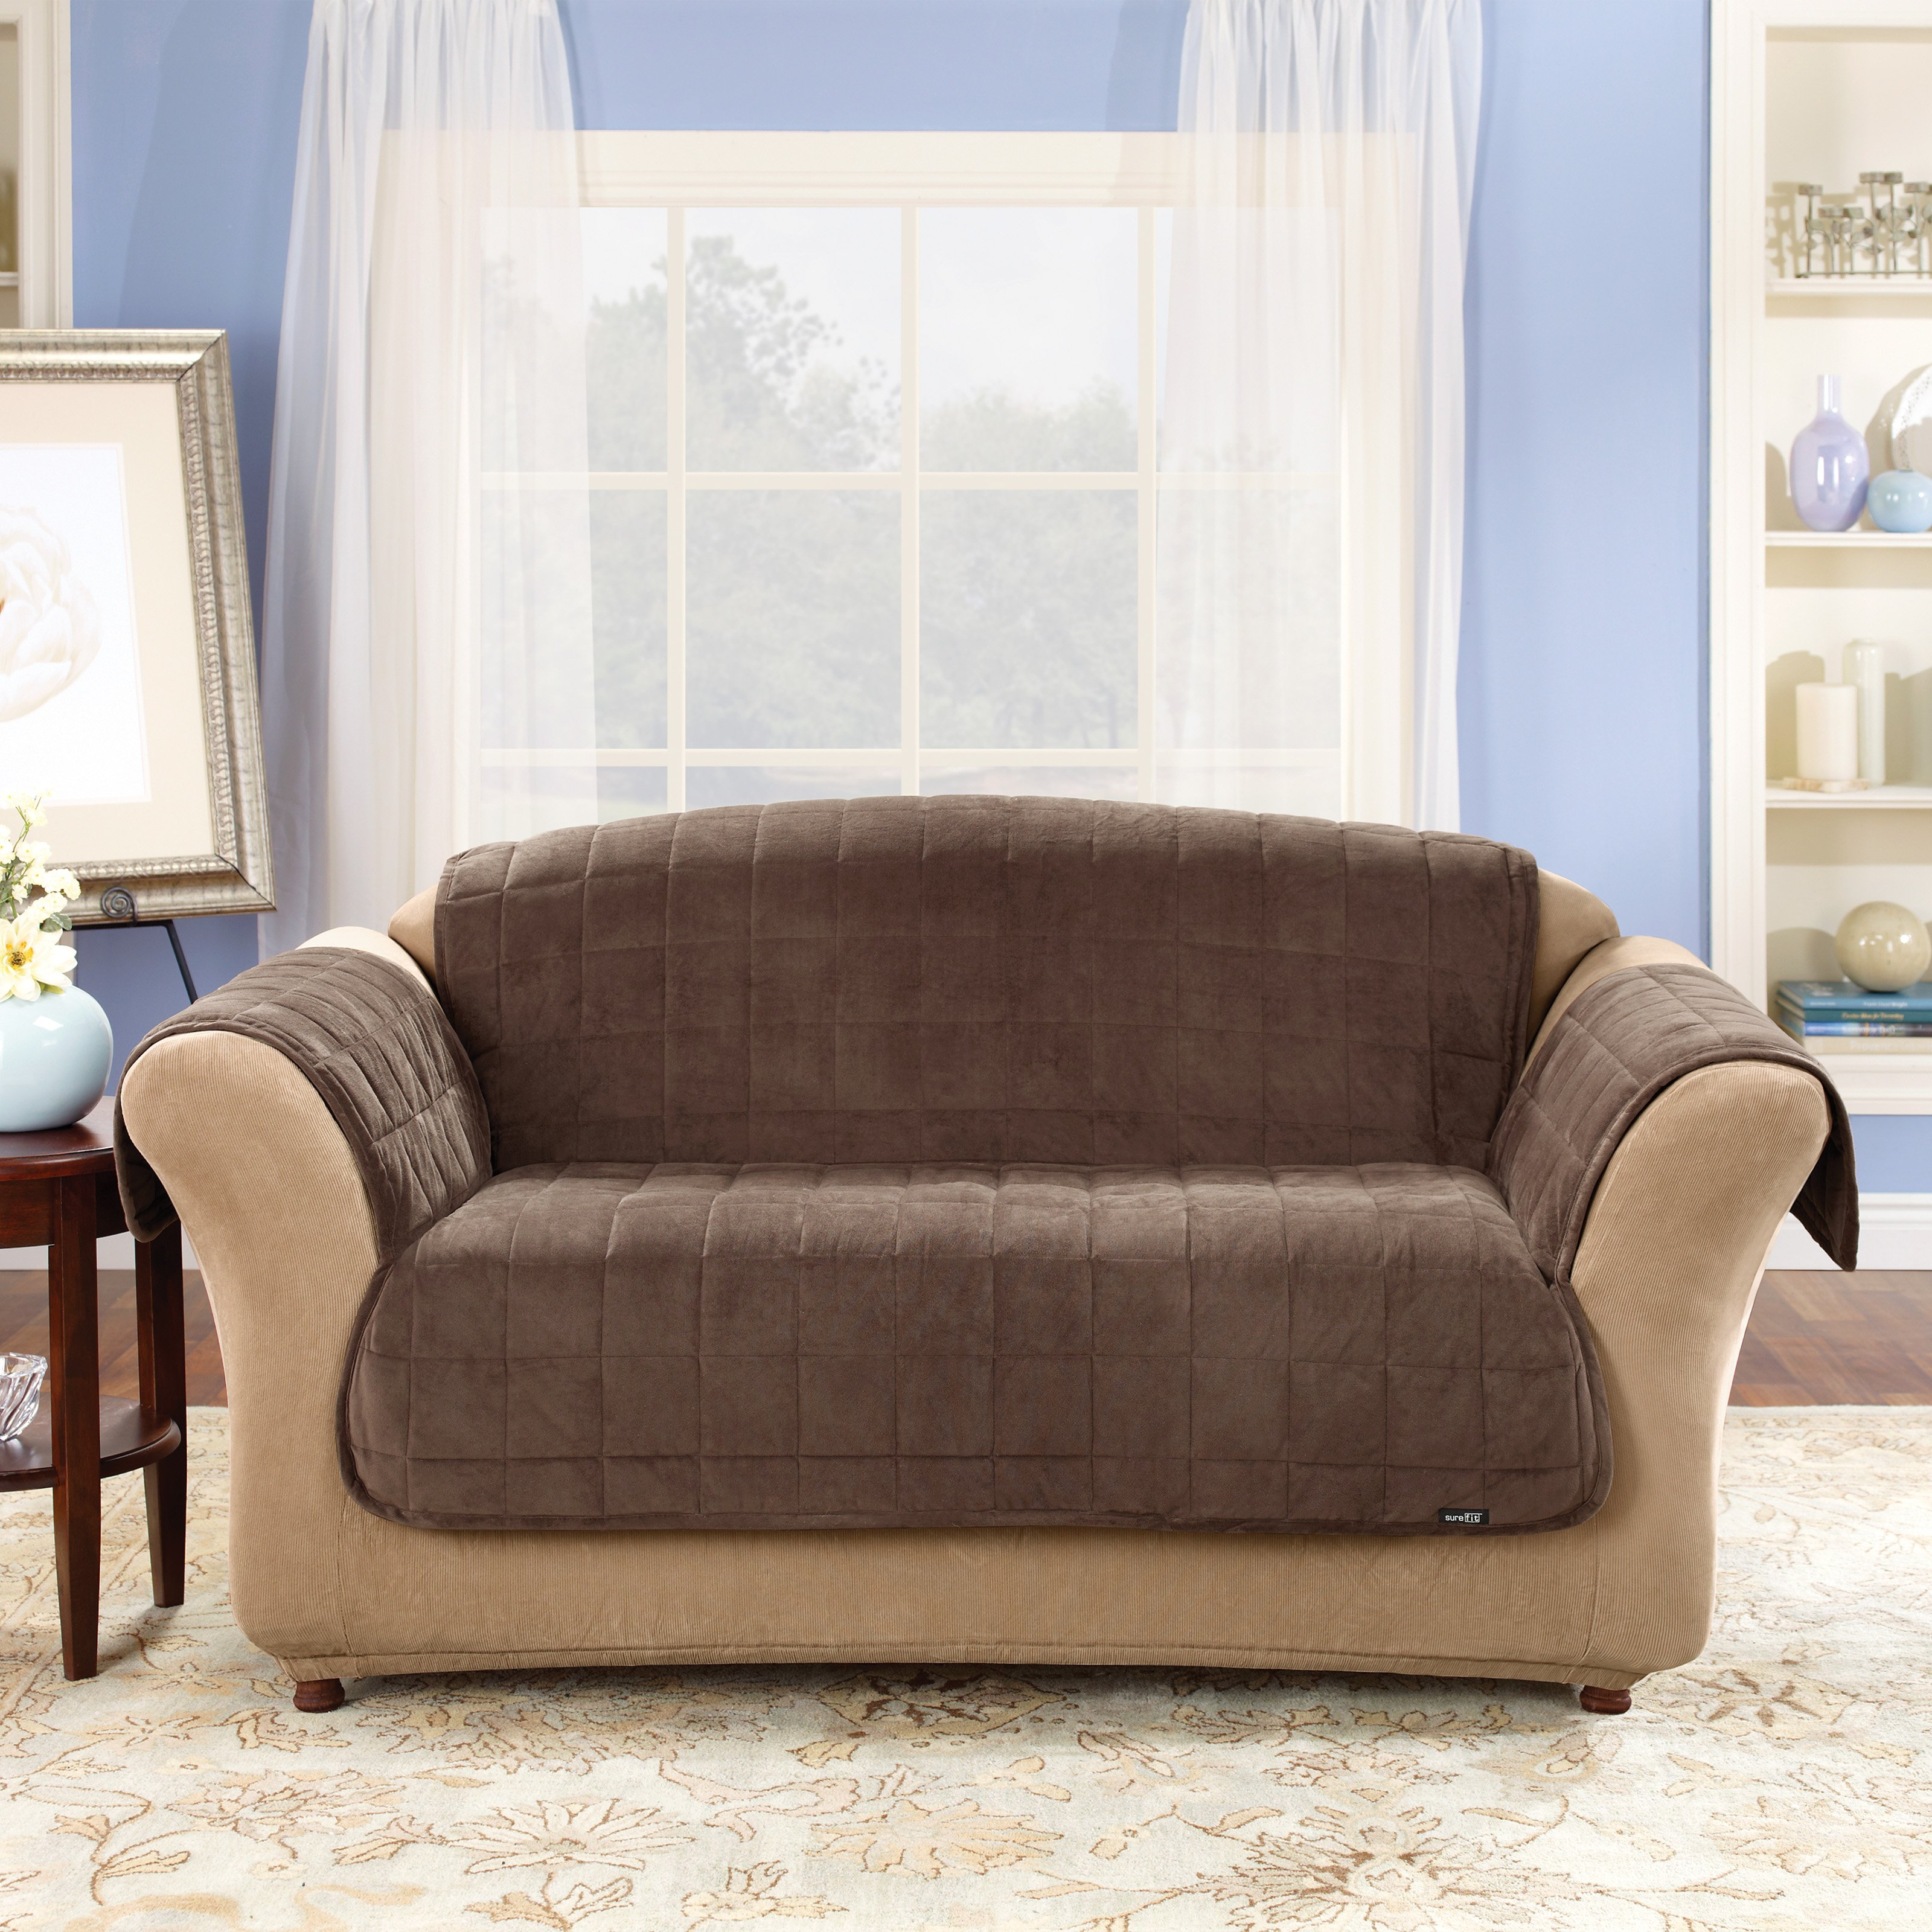 Furniture Perfect Living Room With Sofa Slipcovers Walmart For Throughout Chaise Sofa Covers (#5 of 12)